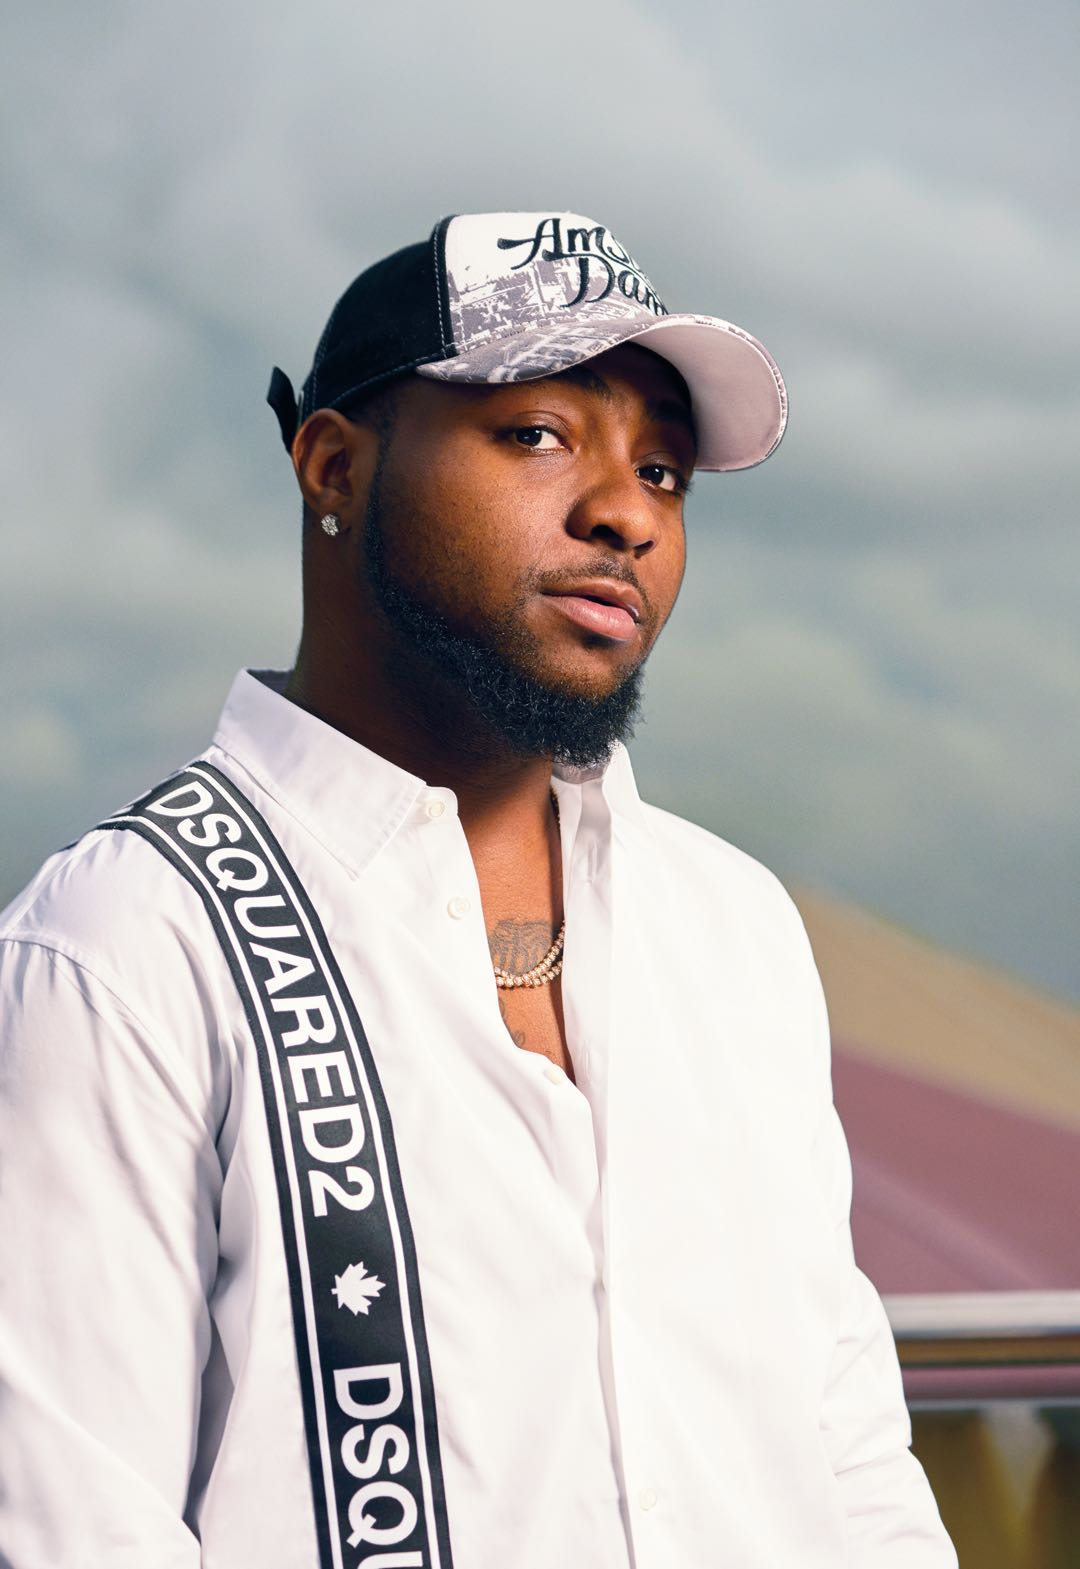 Davido lends his voice Politically, Calls On Colleagues To Do Same